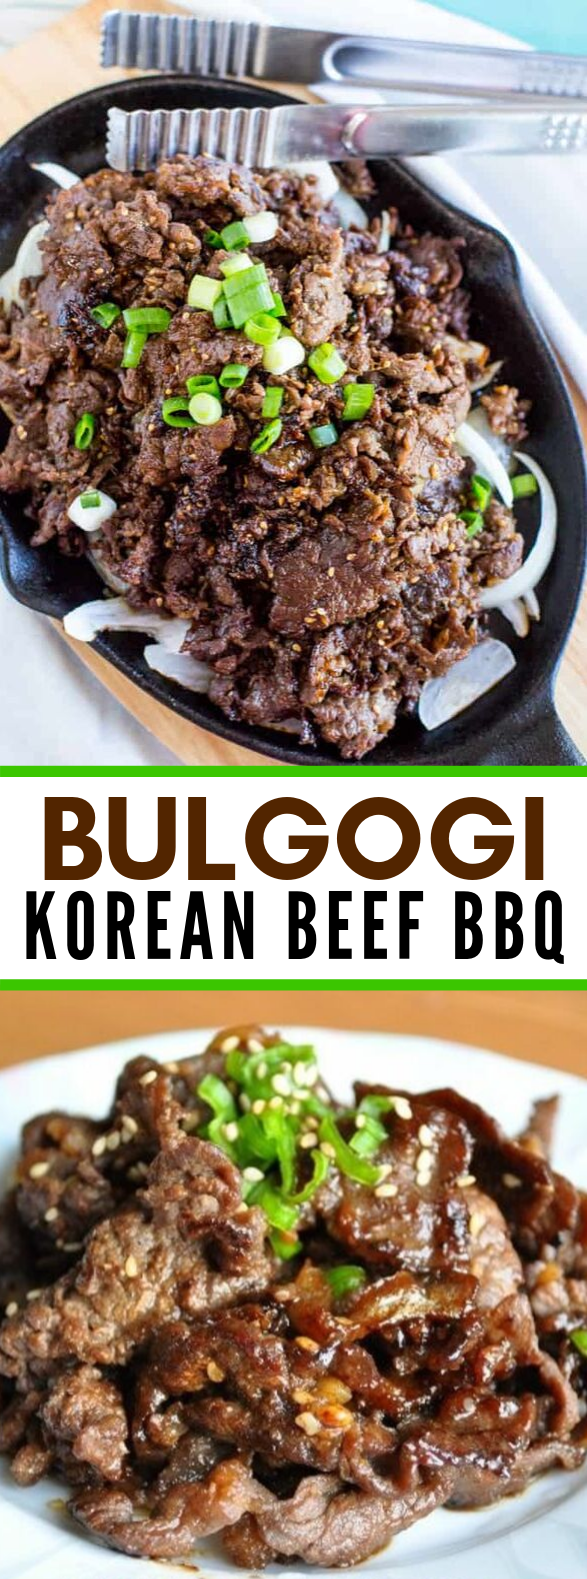 Bulgogi (Korean Beef BBQ 불고기) #koreanfood #dinner